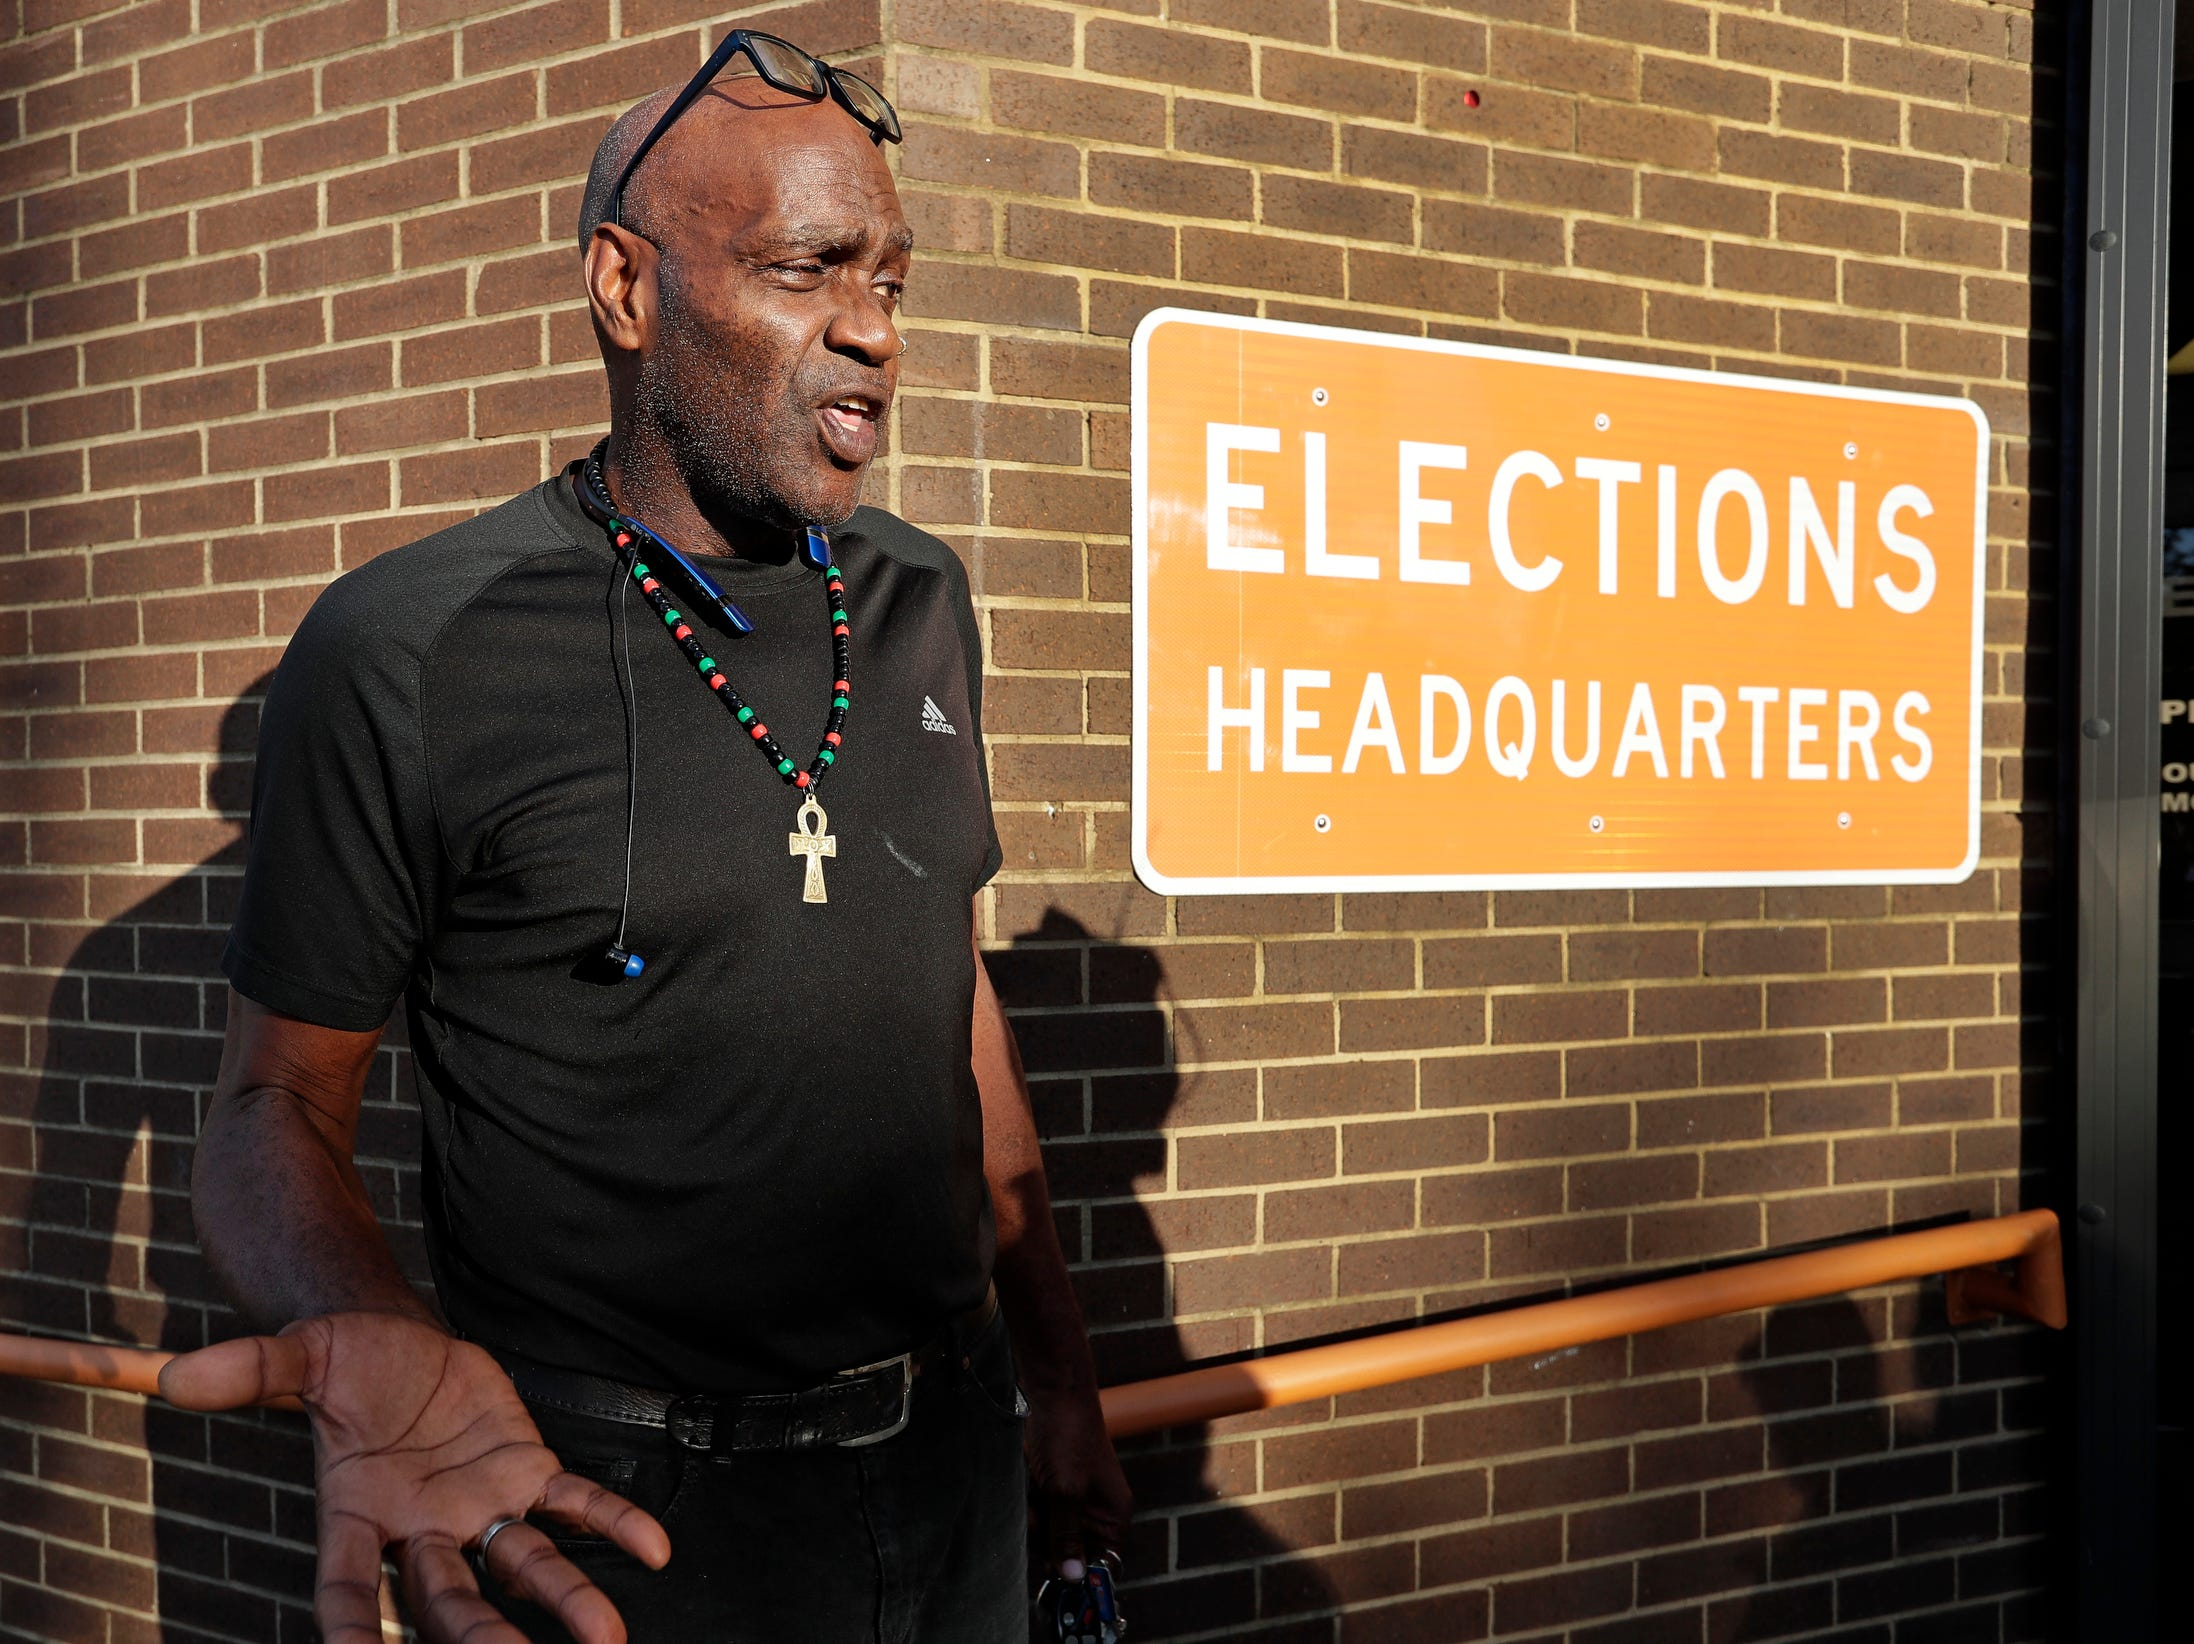 Former felon Robert Eckerd talks with reporters after registering to vote at the Supervisor of Elections office Tuesday, in Orlando, Fla.